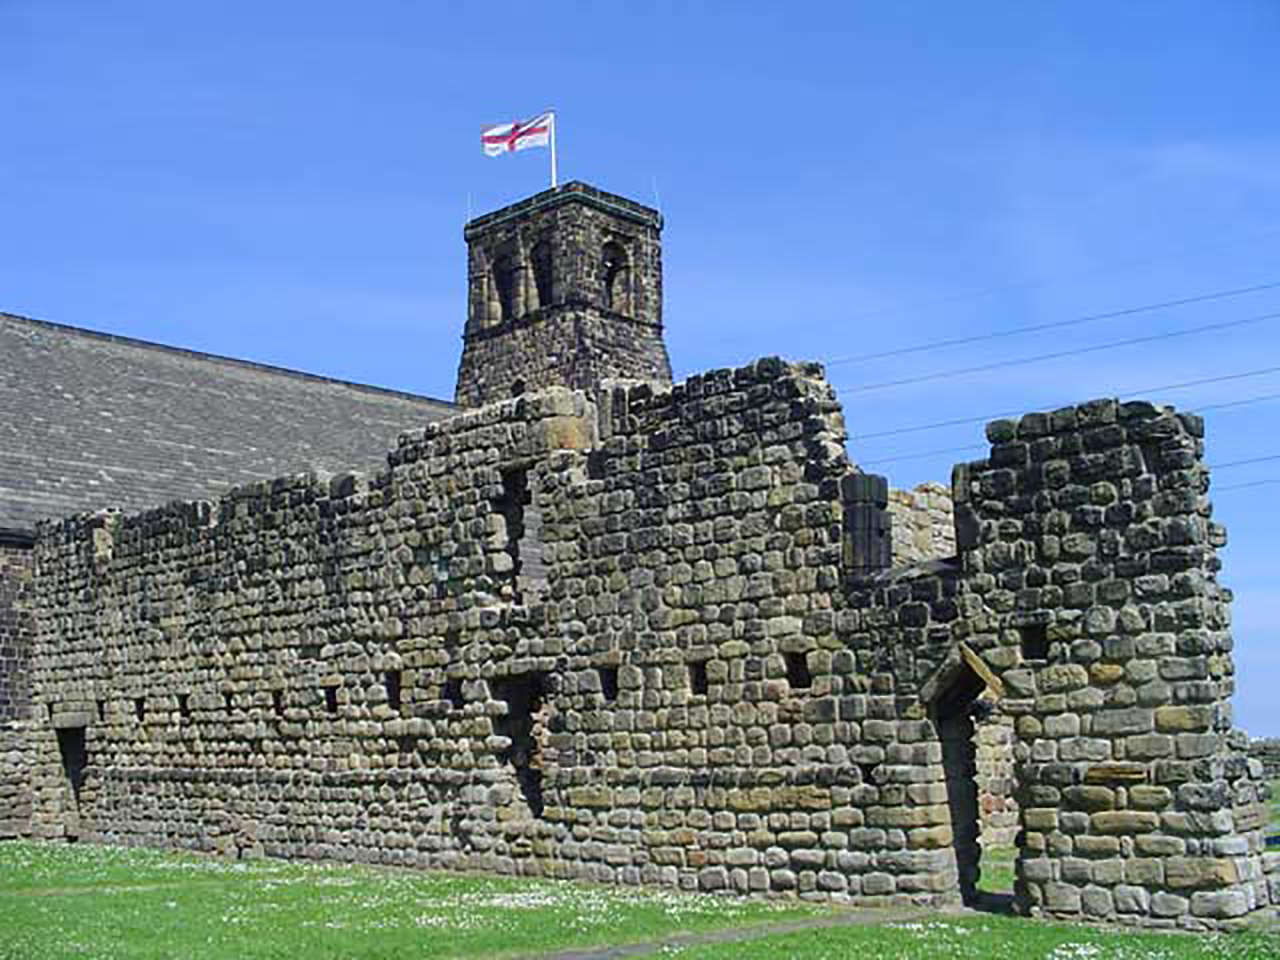 Remains of the monastery still stand in Jarrow. (Wikipedia)